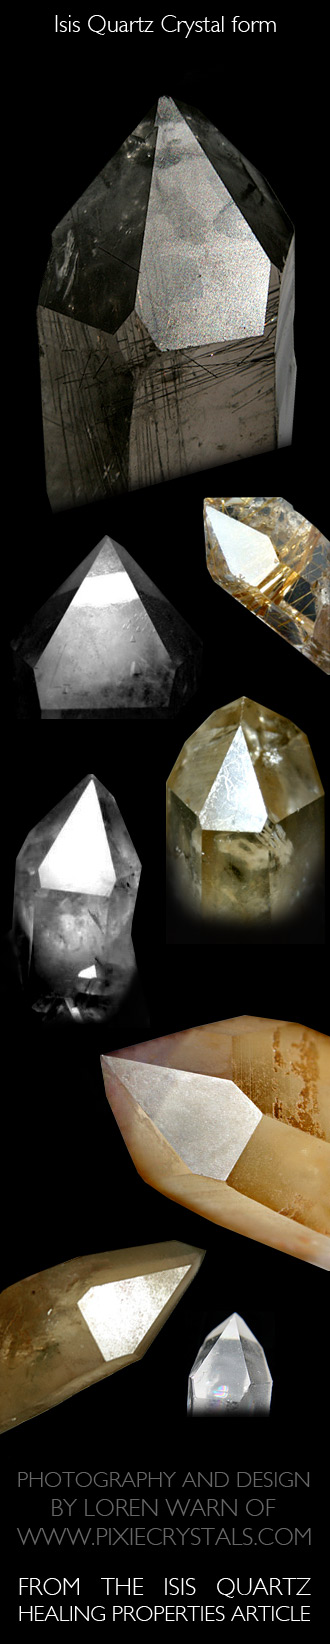 ISIS QUARTZ Crystals - Crystal Healing Properties of ISIS Quartz Crystals - 5-sided front face